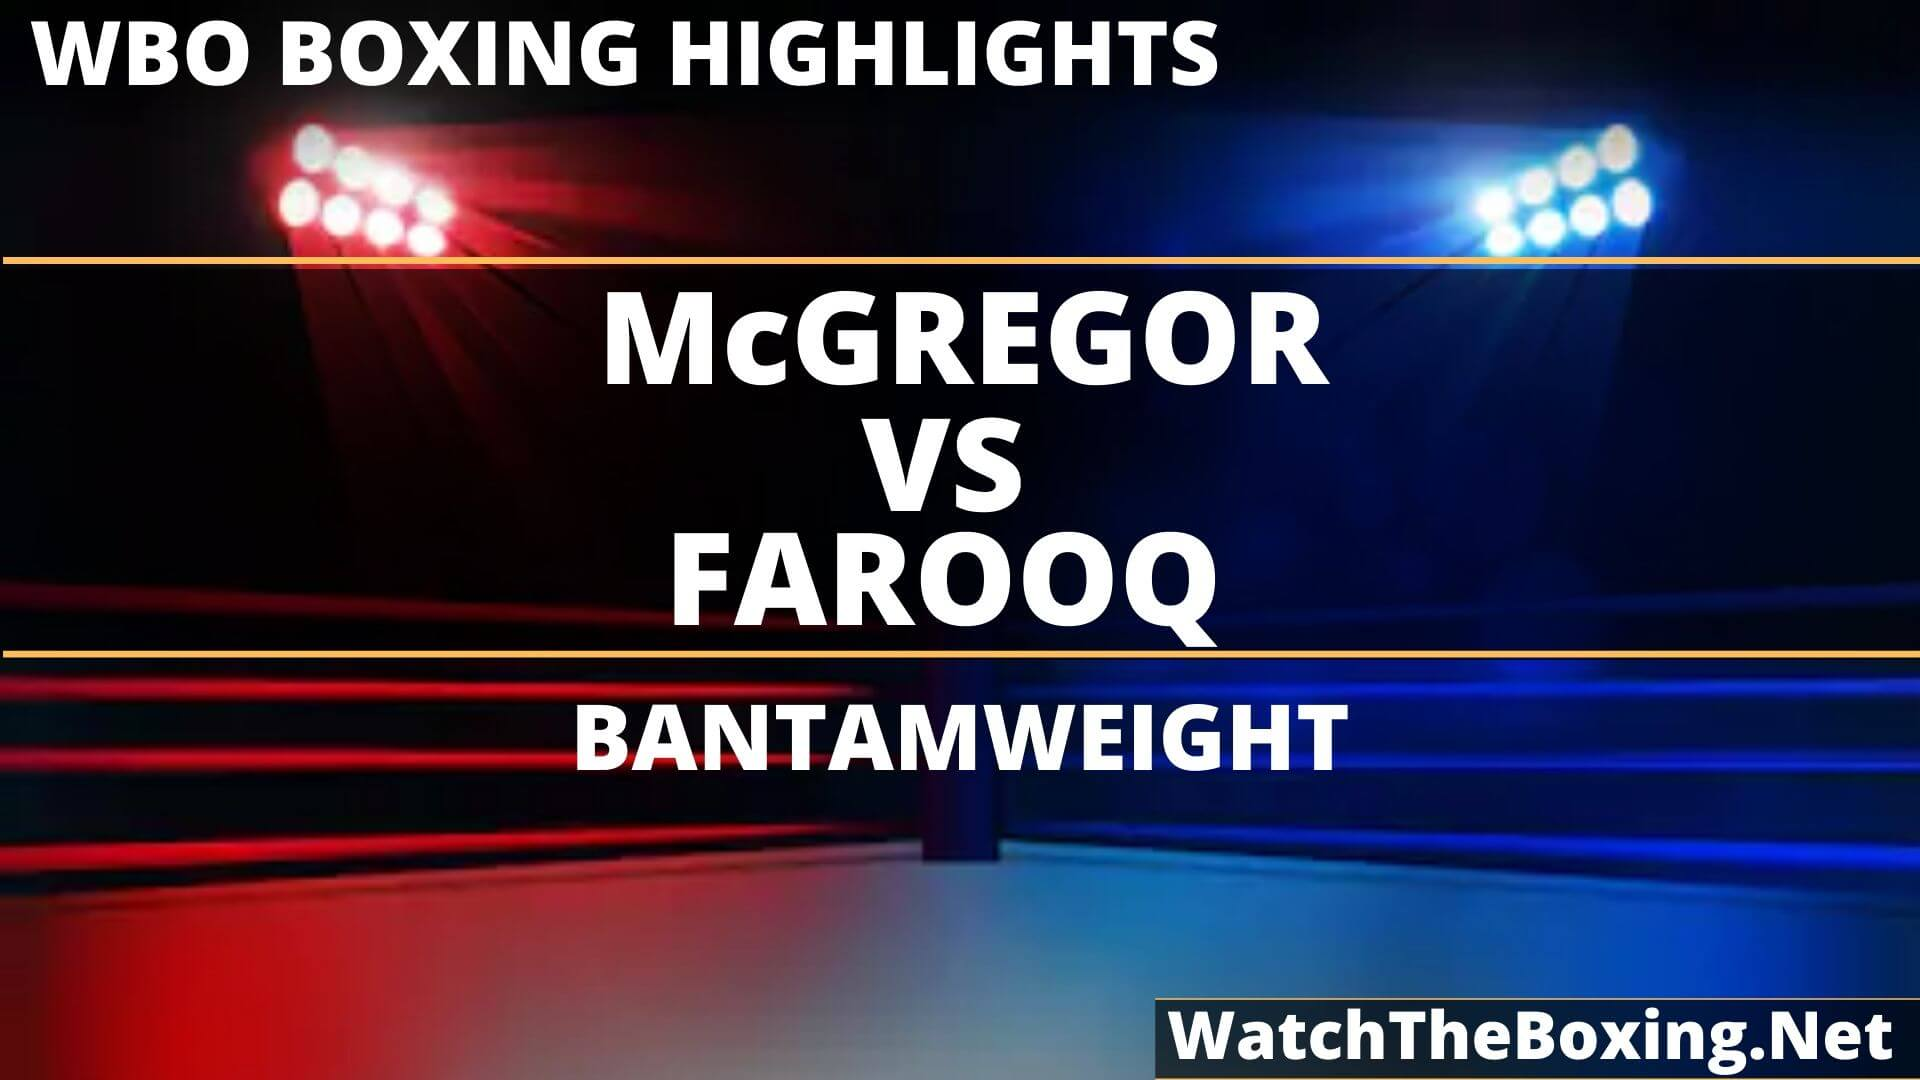 McGregor Vs Farooq Highlights 2019